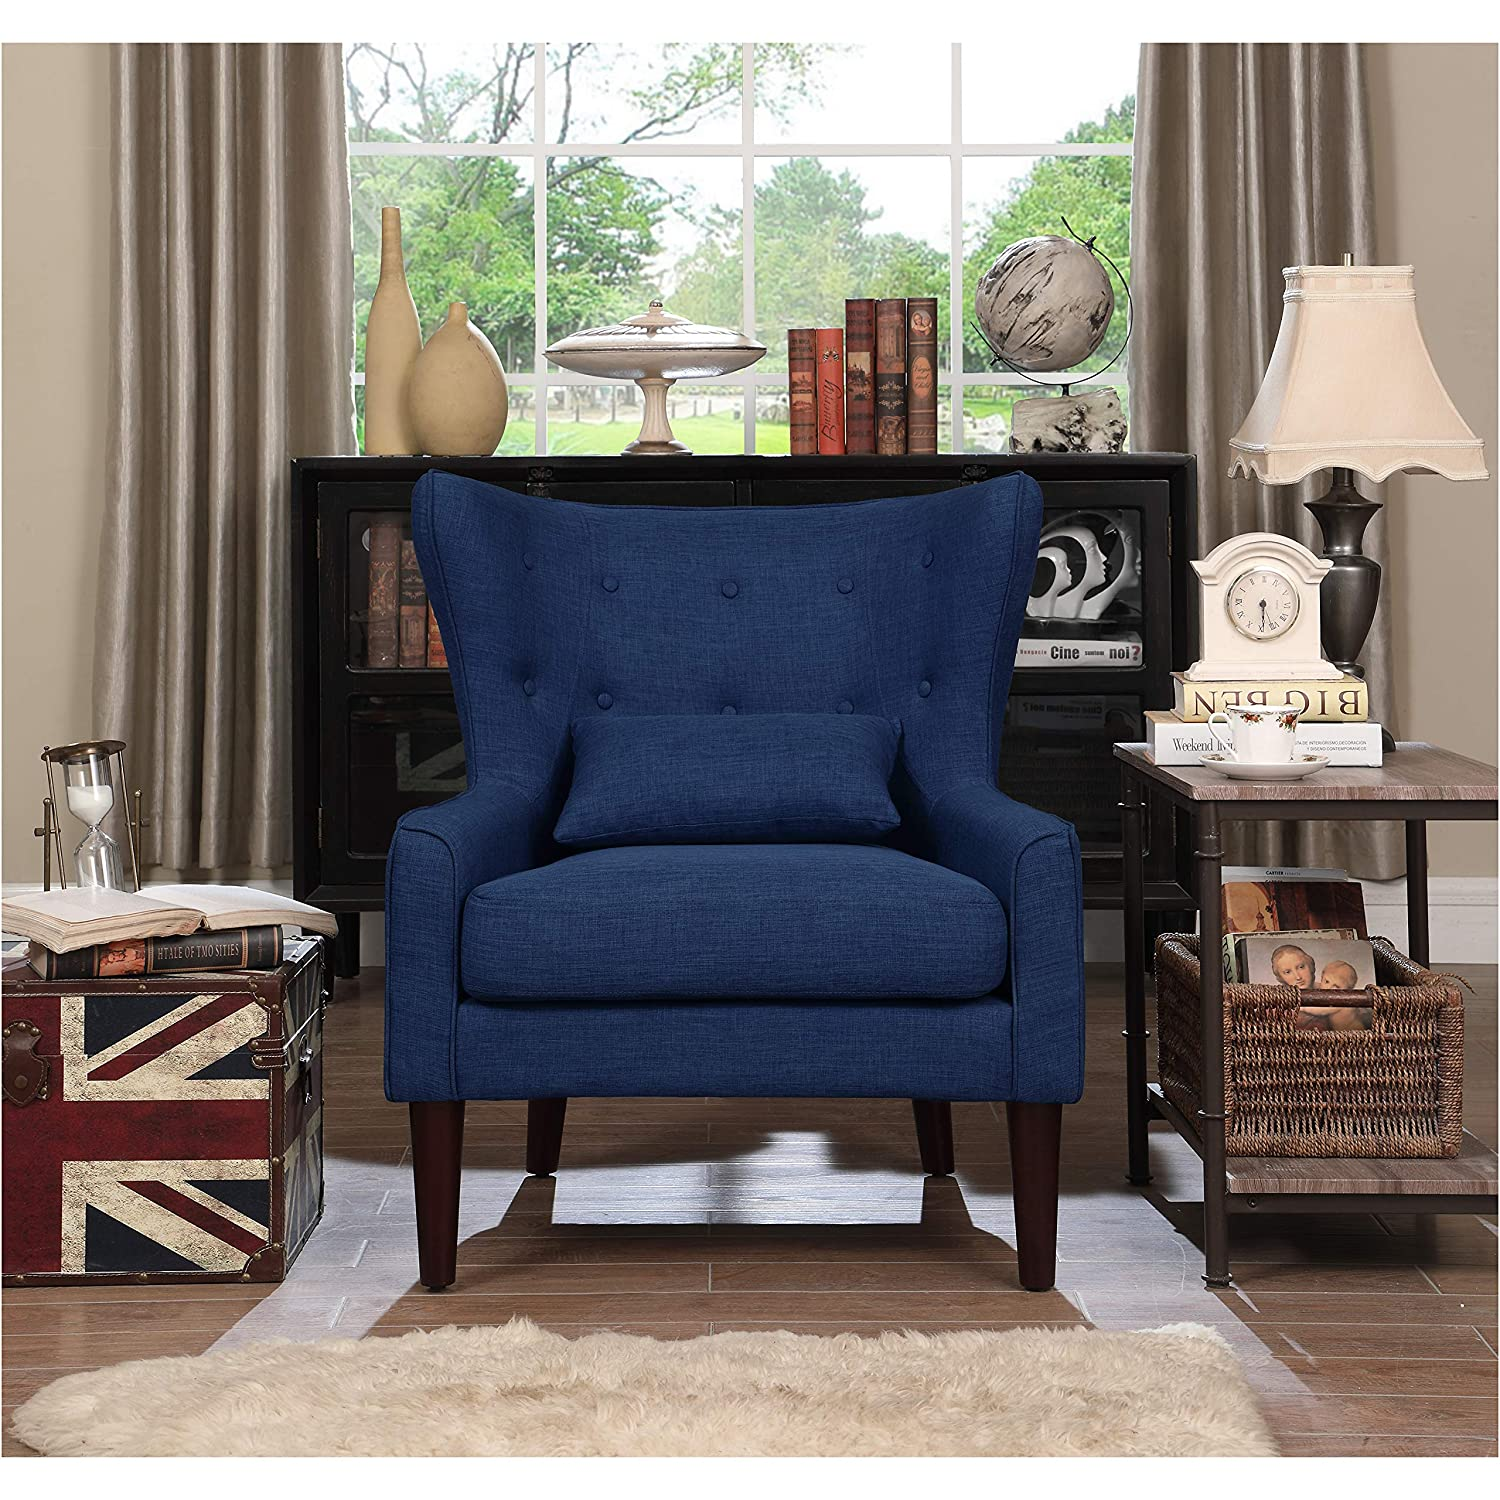 Amazon.com: Rosevera Liviana Tufted Wingback Club Chair with Back Cushion, Brown: Kitchen & Dining